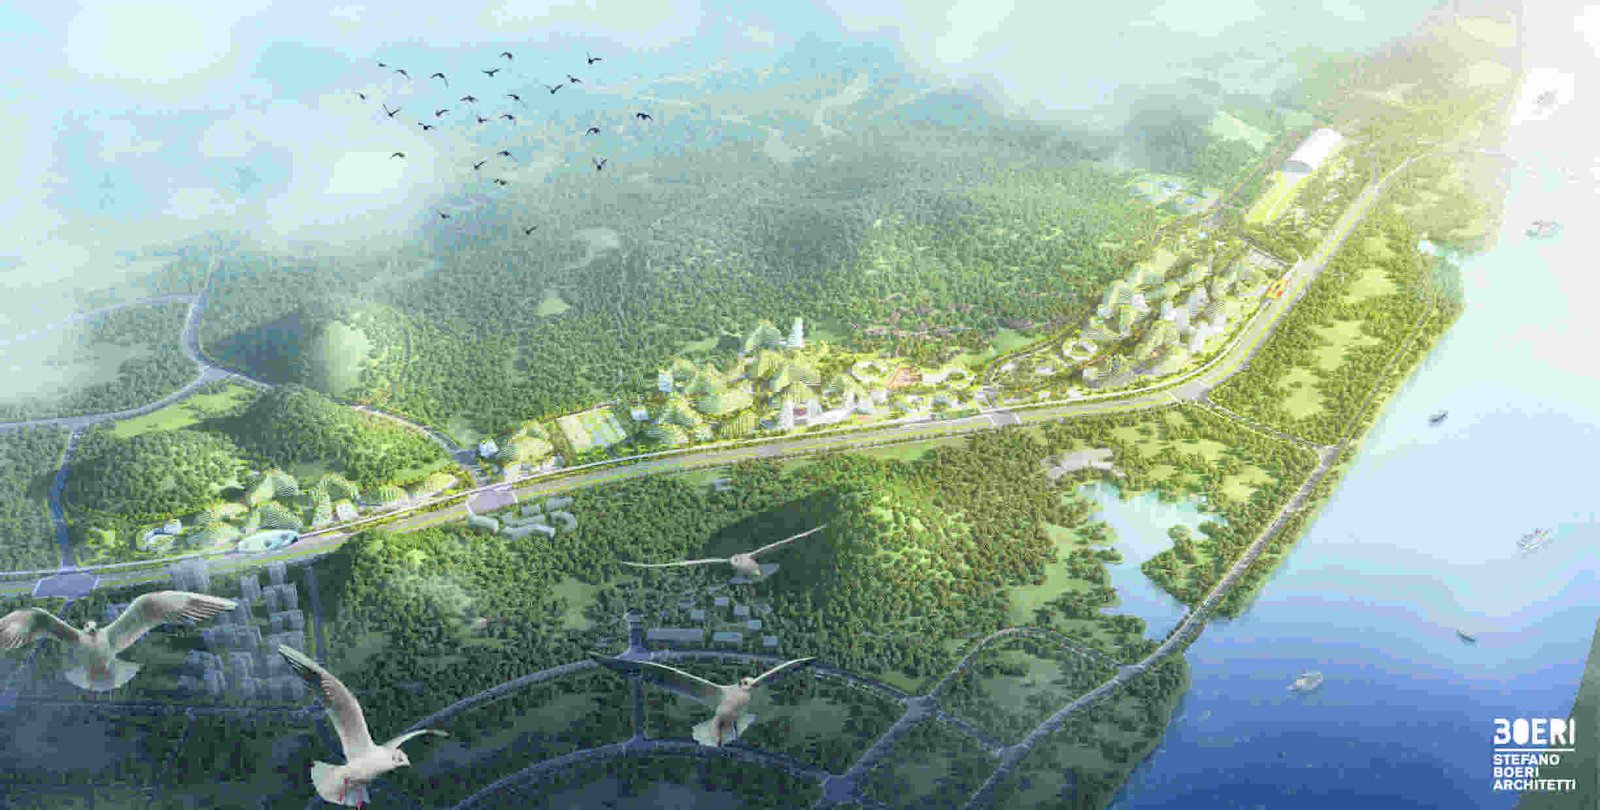 Photo 6 of 6 in A Green City in China That Will Play a Major Role in Fighting Air Pollution